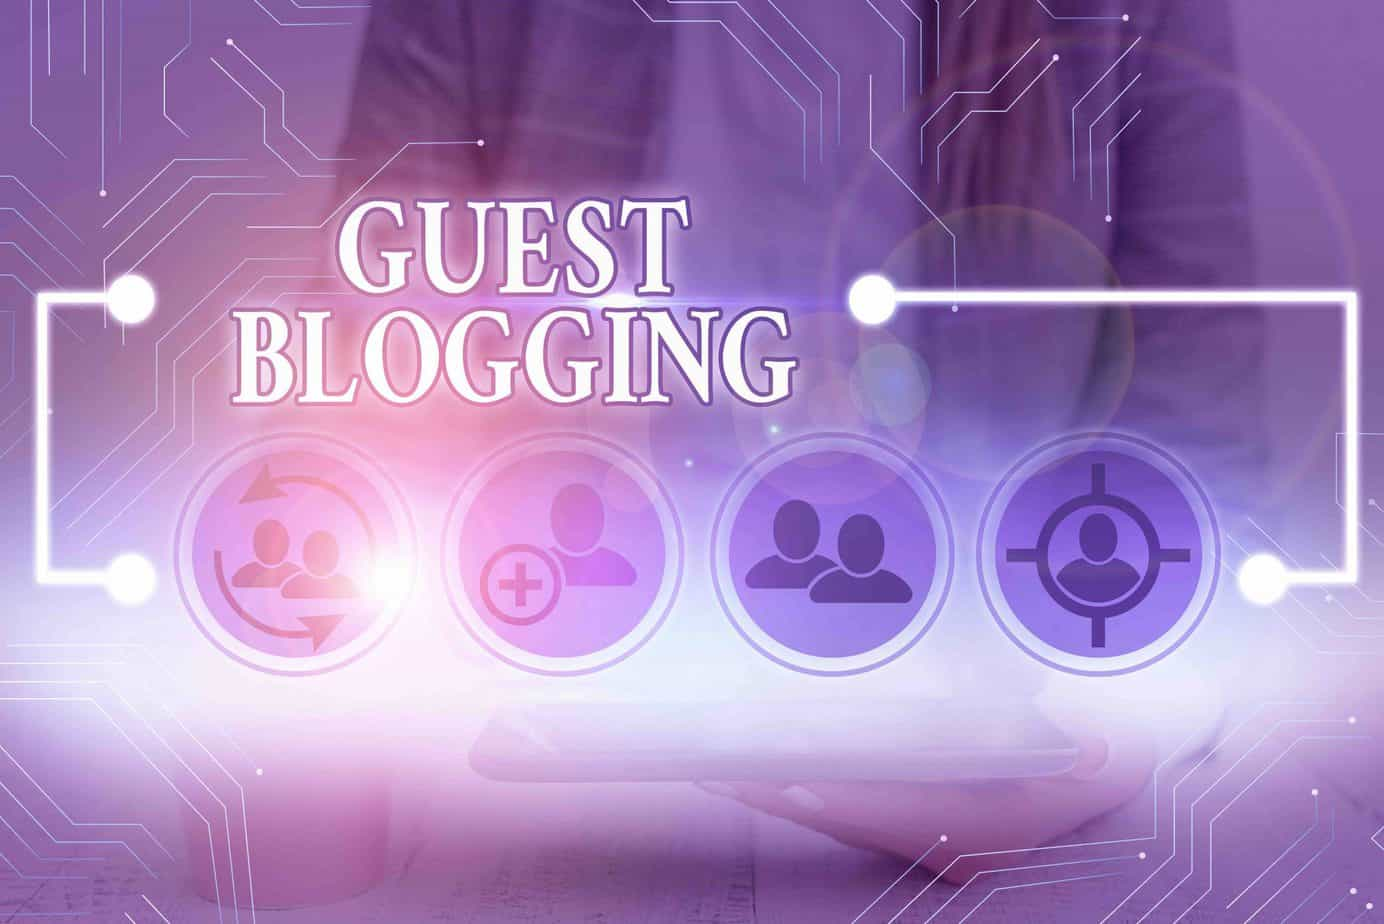 UK Christian offers guest blogging opportunities to Christian leaders